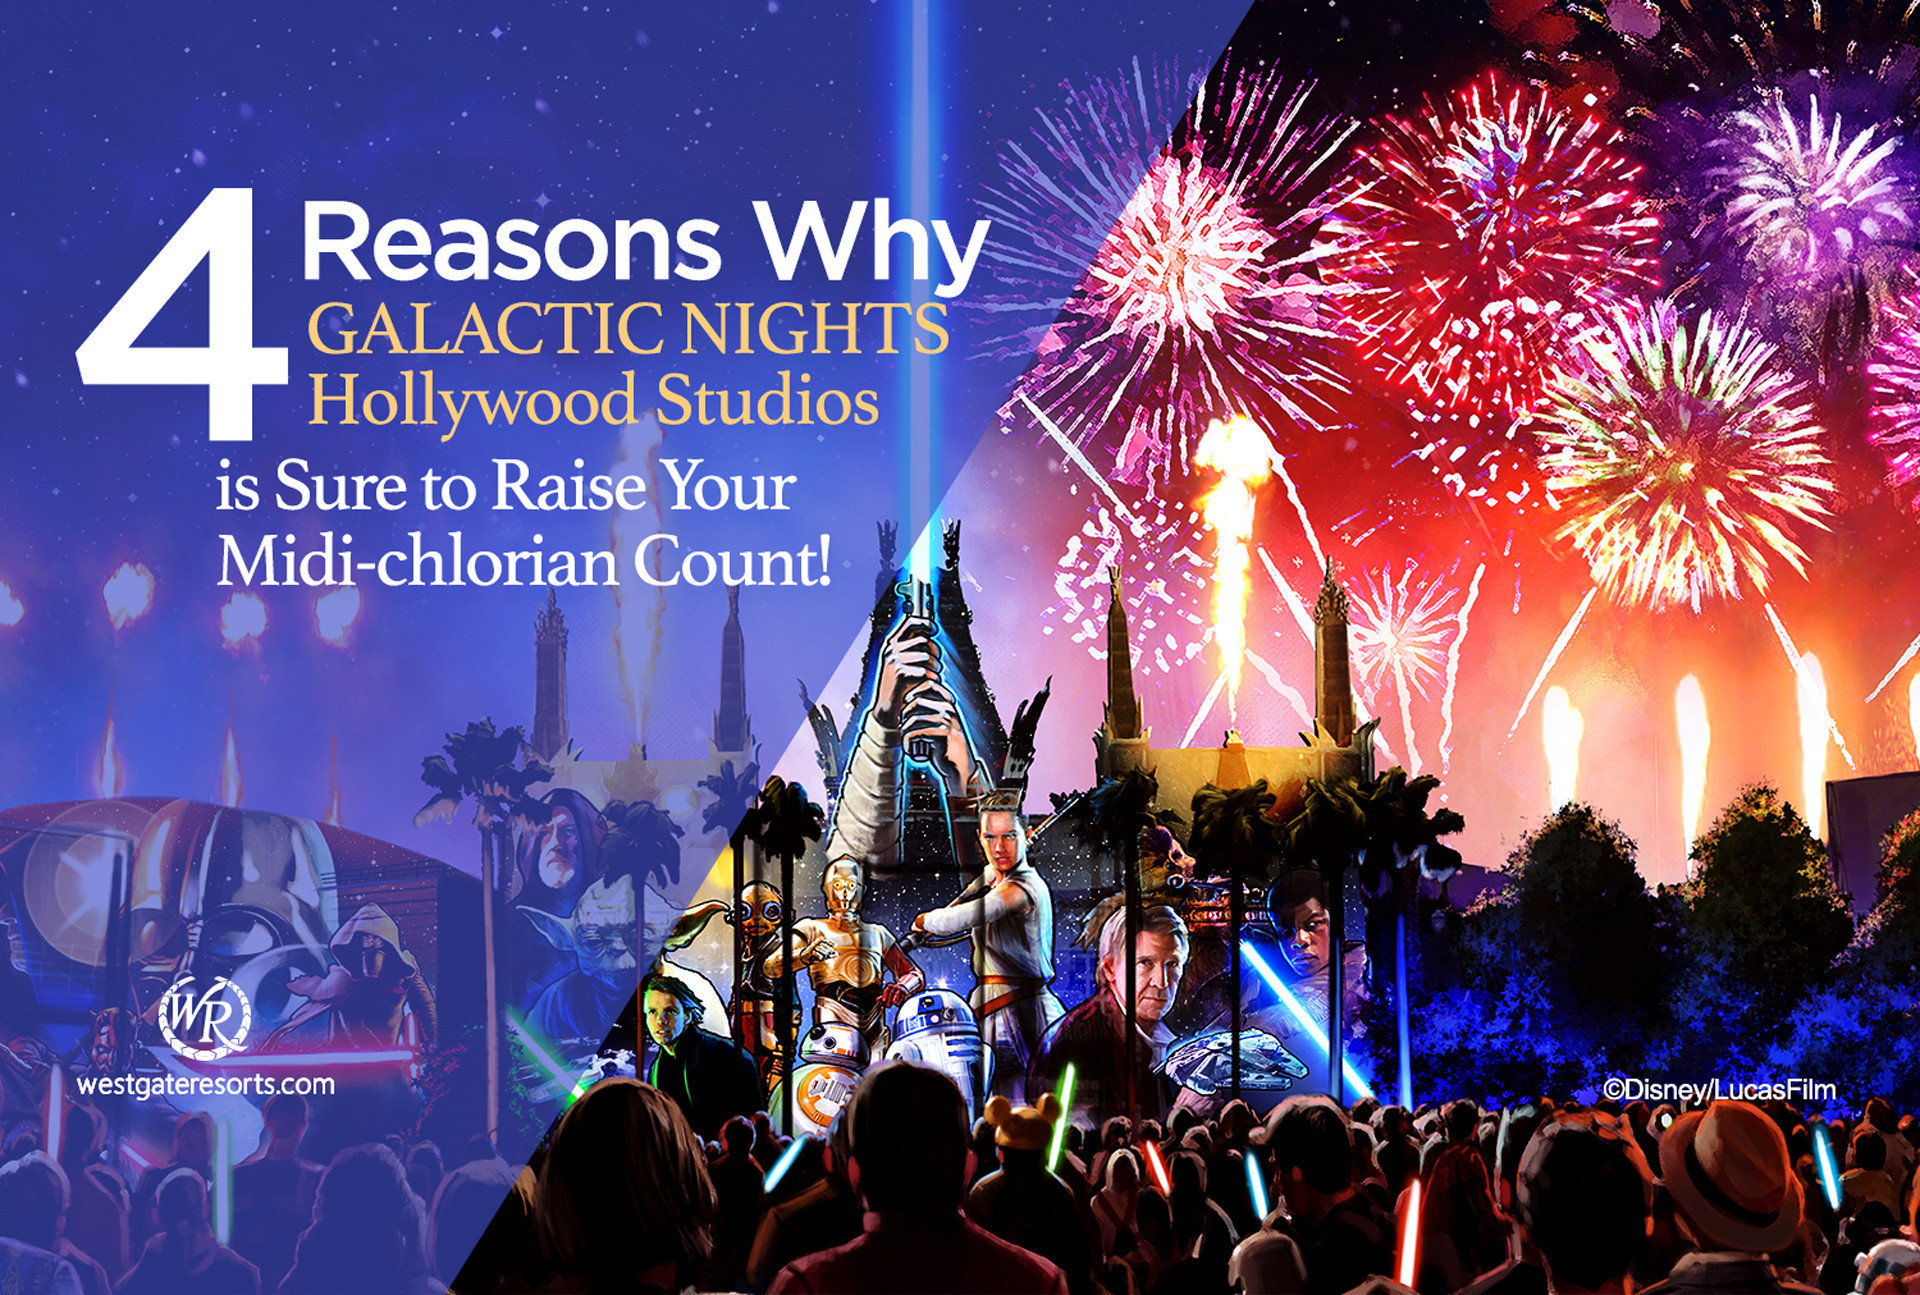 Galactic Nights Hollywood Studios | Disney Star Wars Events | Westgate Resorts